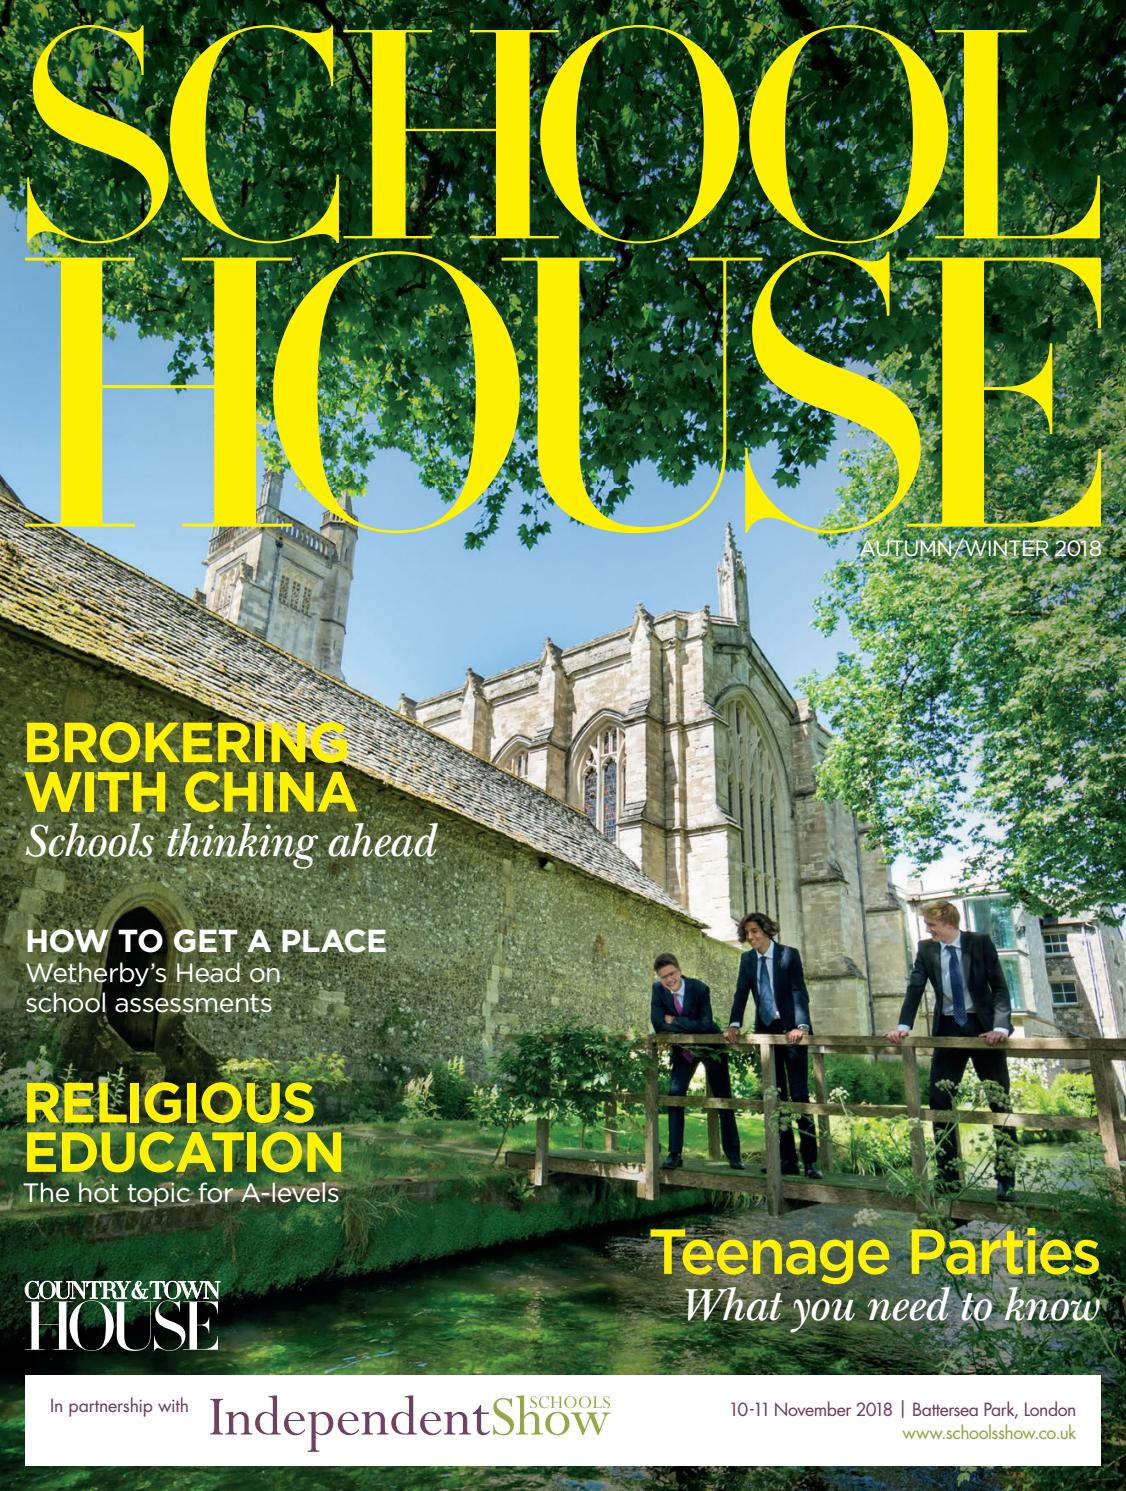 ff35973d4b School House - Autumn Winter 2018 by Country   Town House Magazine - issuu